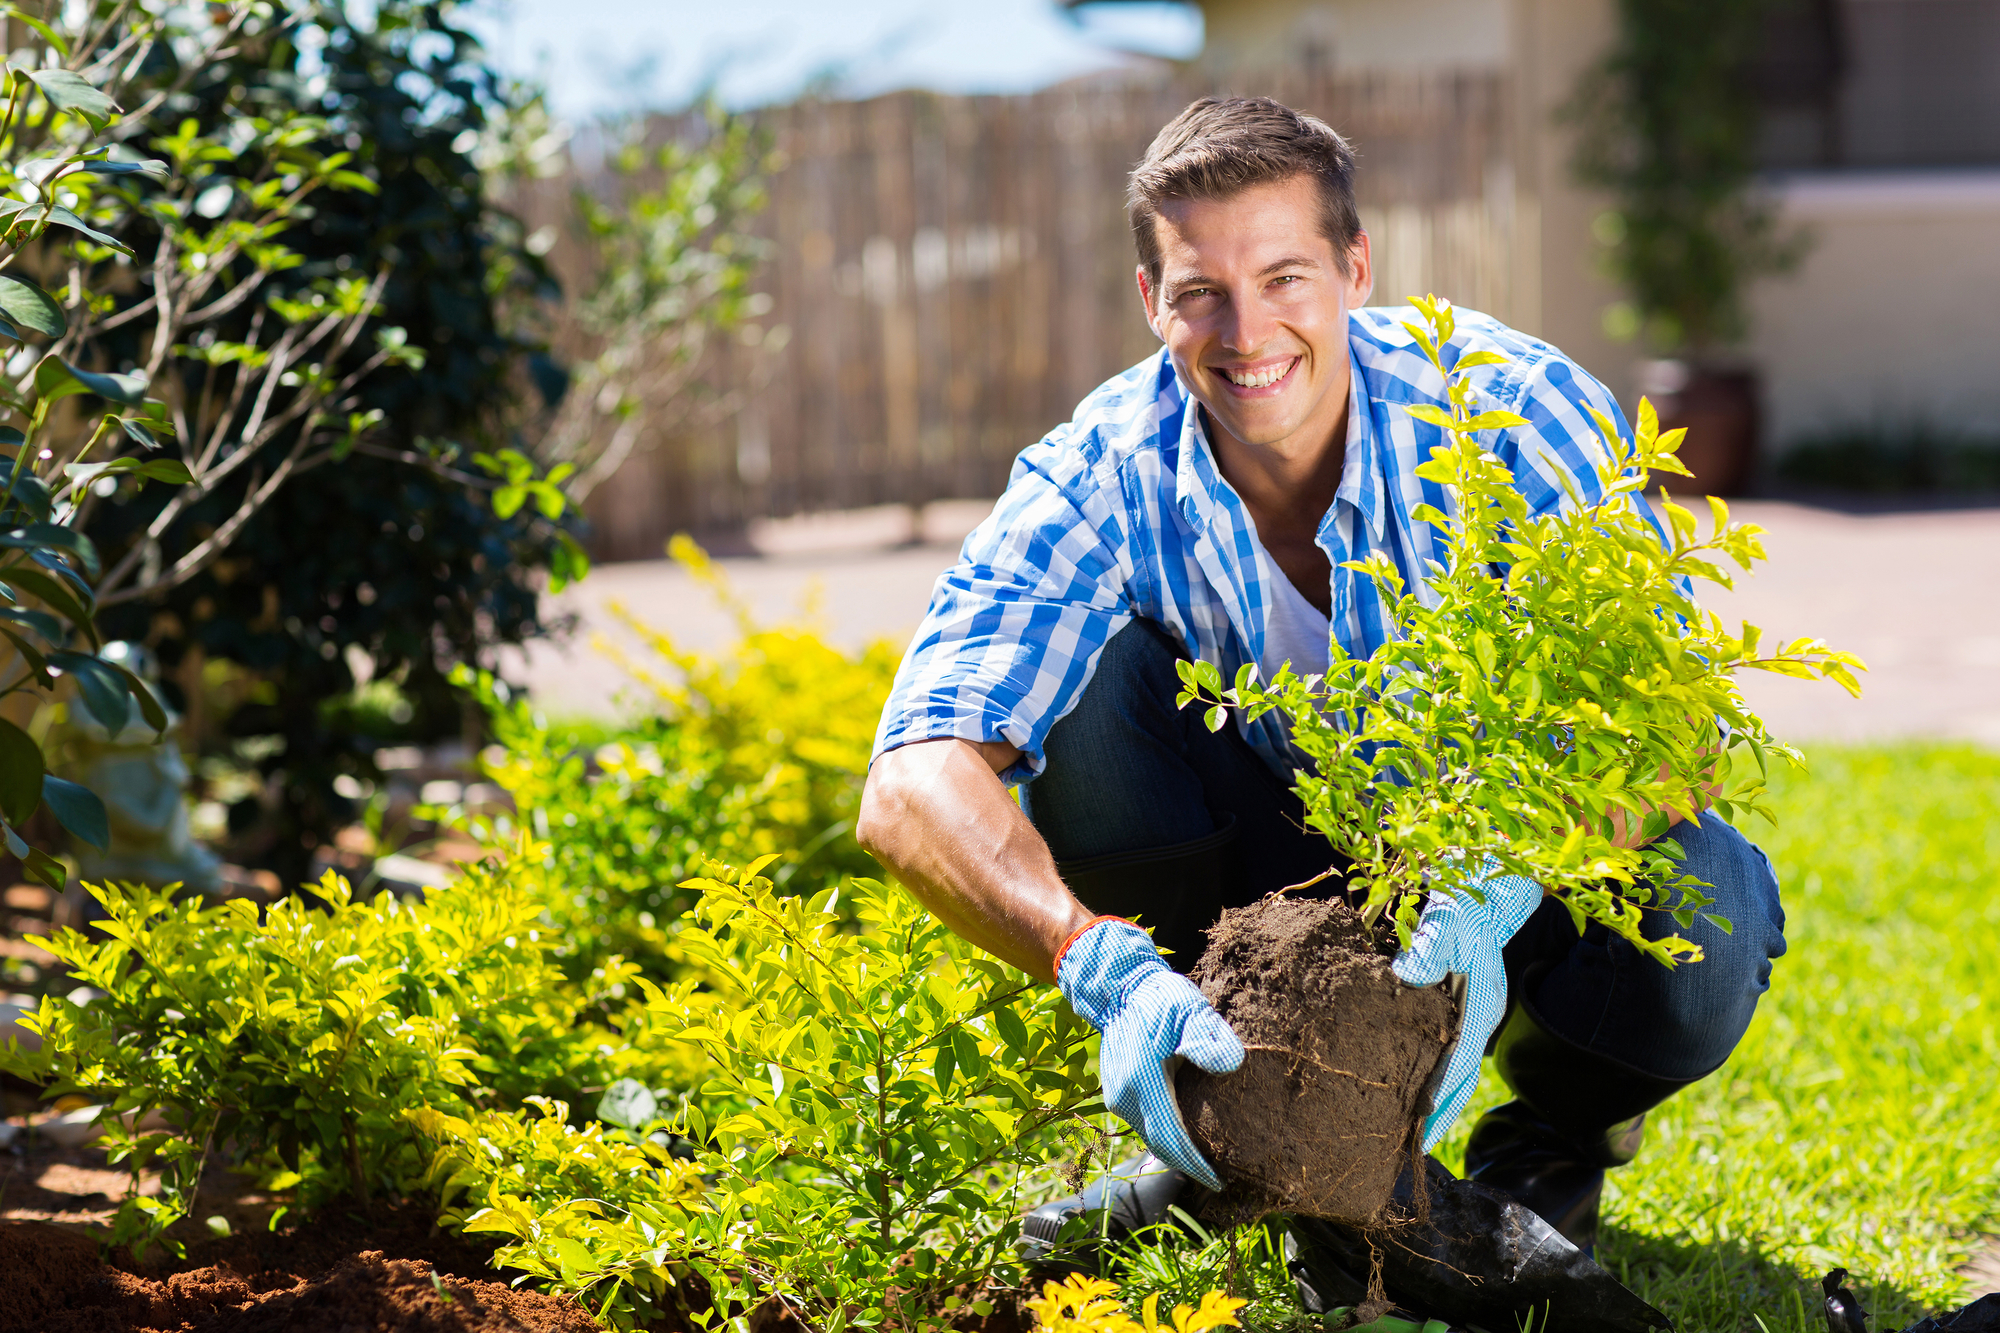 This is how gardening good for your Mental Health